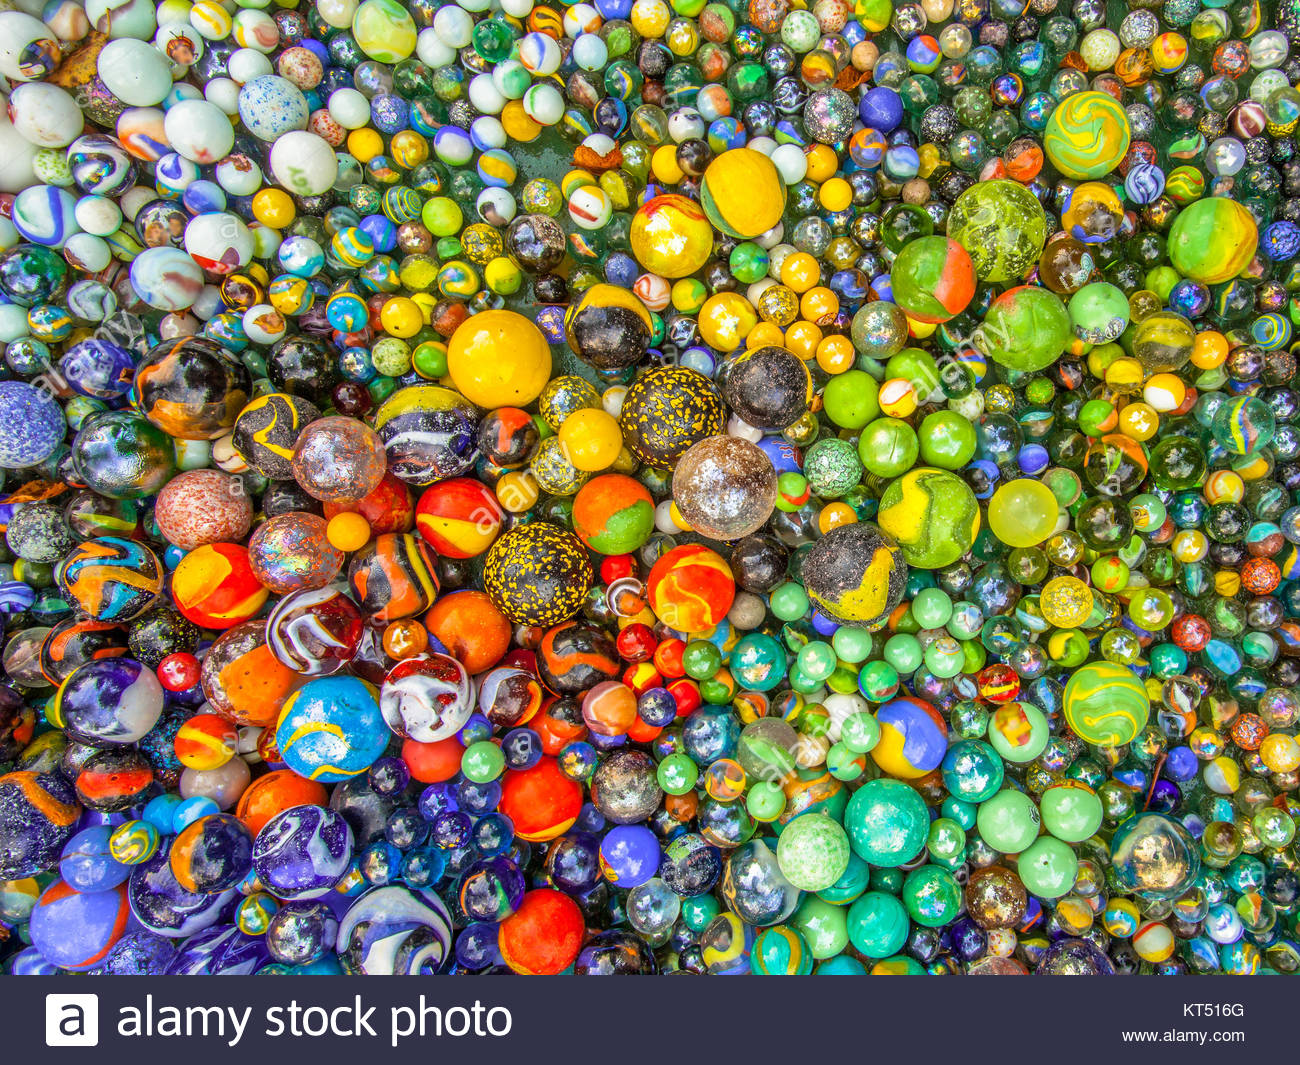 background of colorful Glass marbles of different sizes in a color 1300x1065